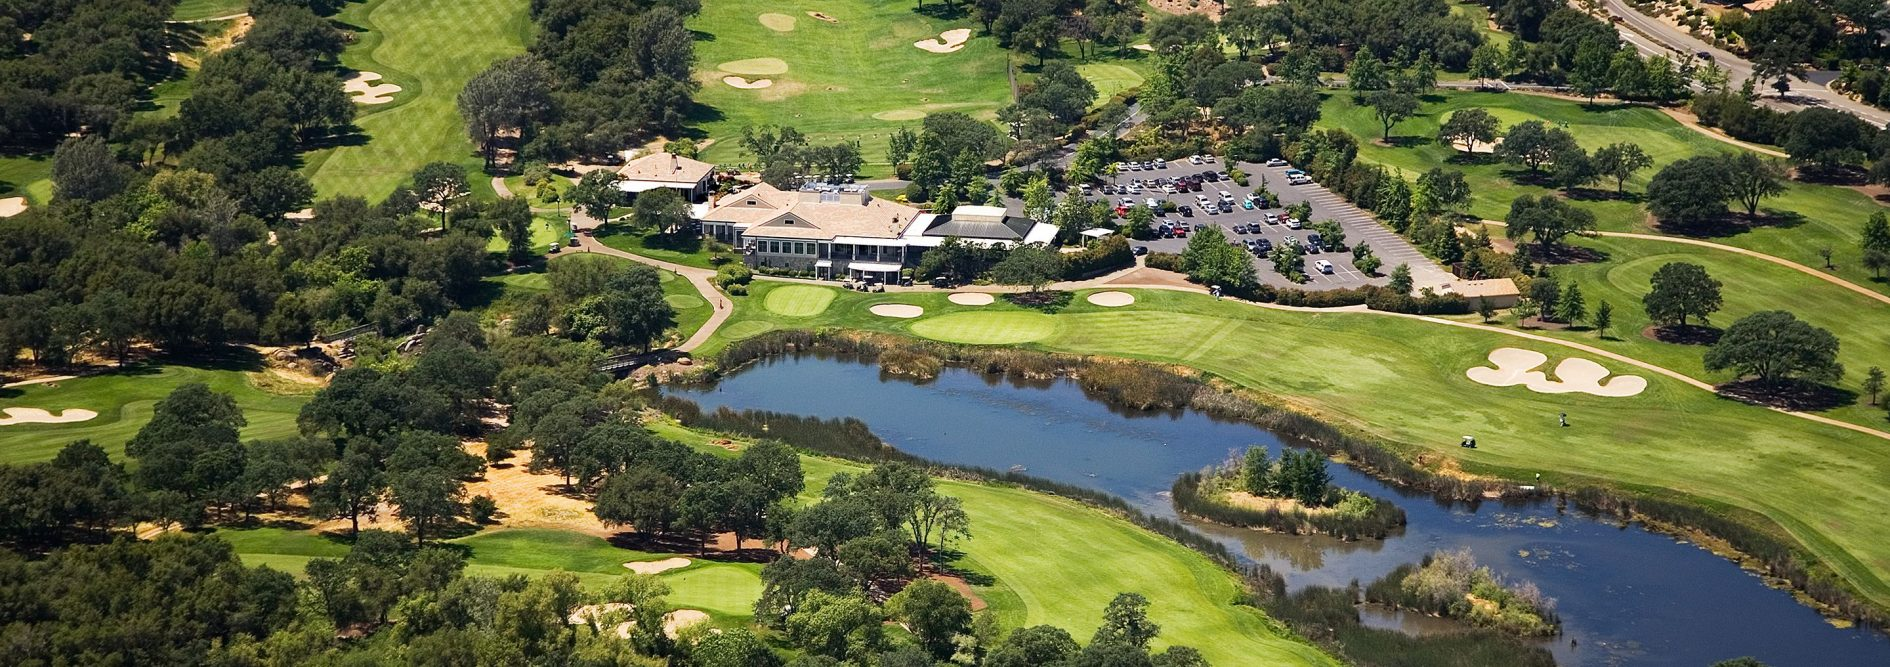 An aerial view of the Luxurious Granite Bay Country Club and golf course.